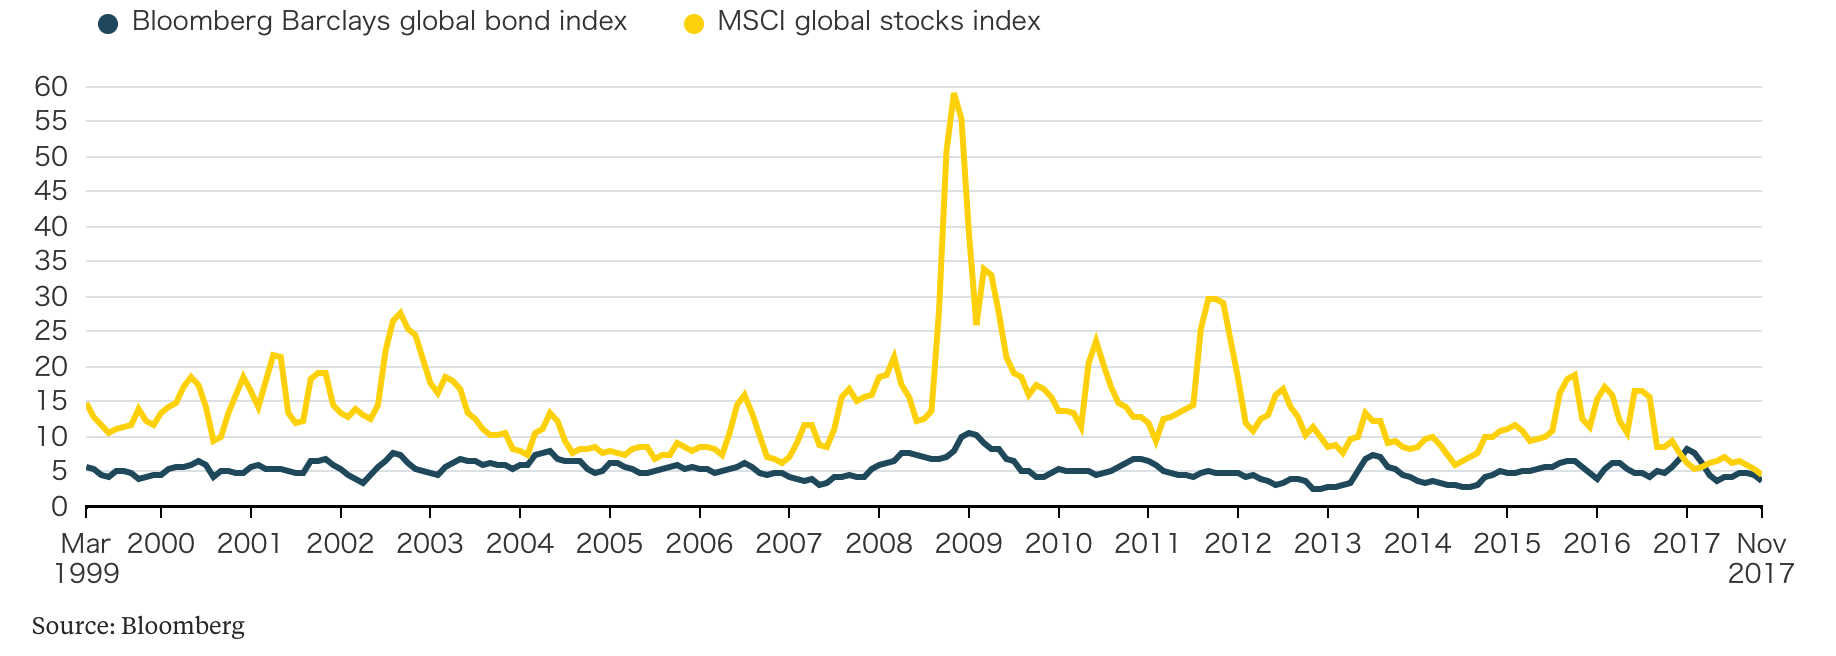 Bloomberg Barclays Global Bond Index and MSCI Global Stocks Index, March 1999 - Nov 2017